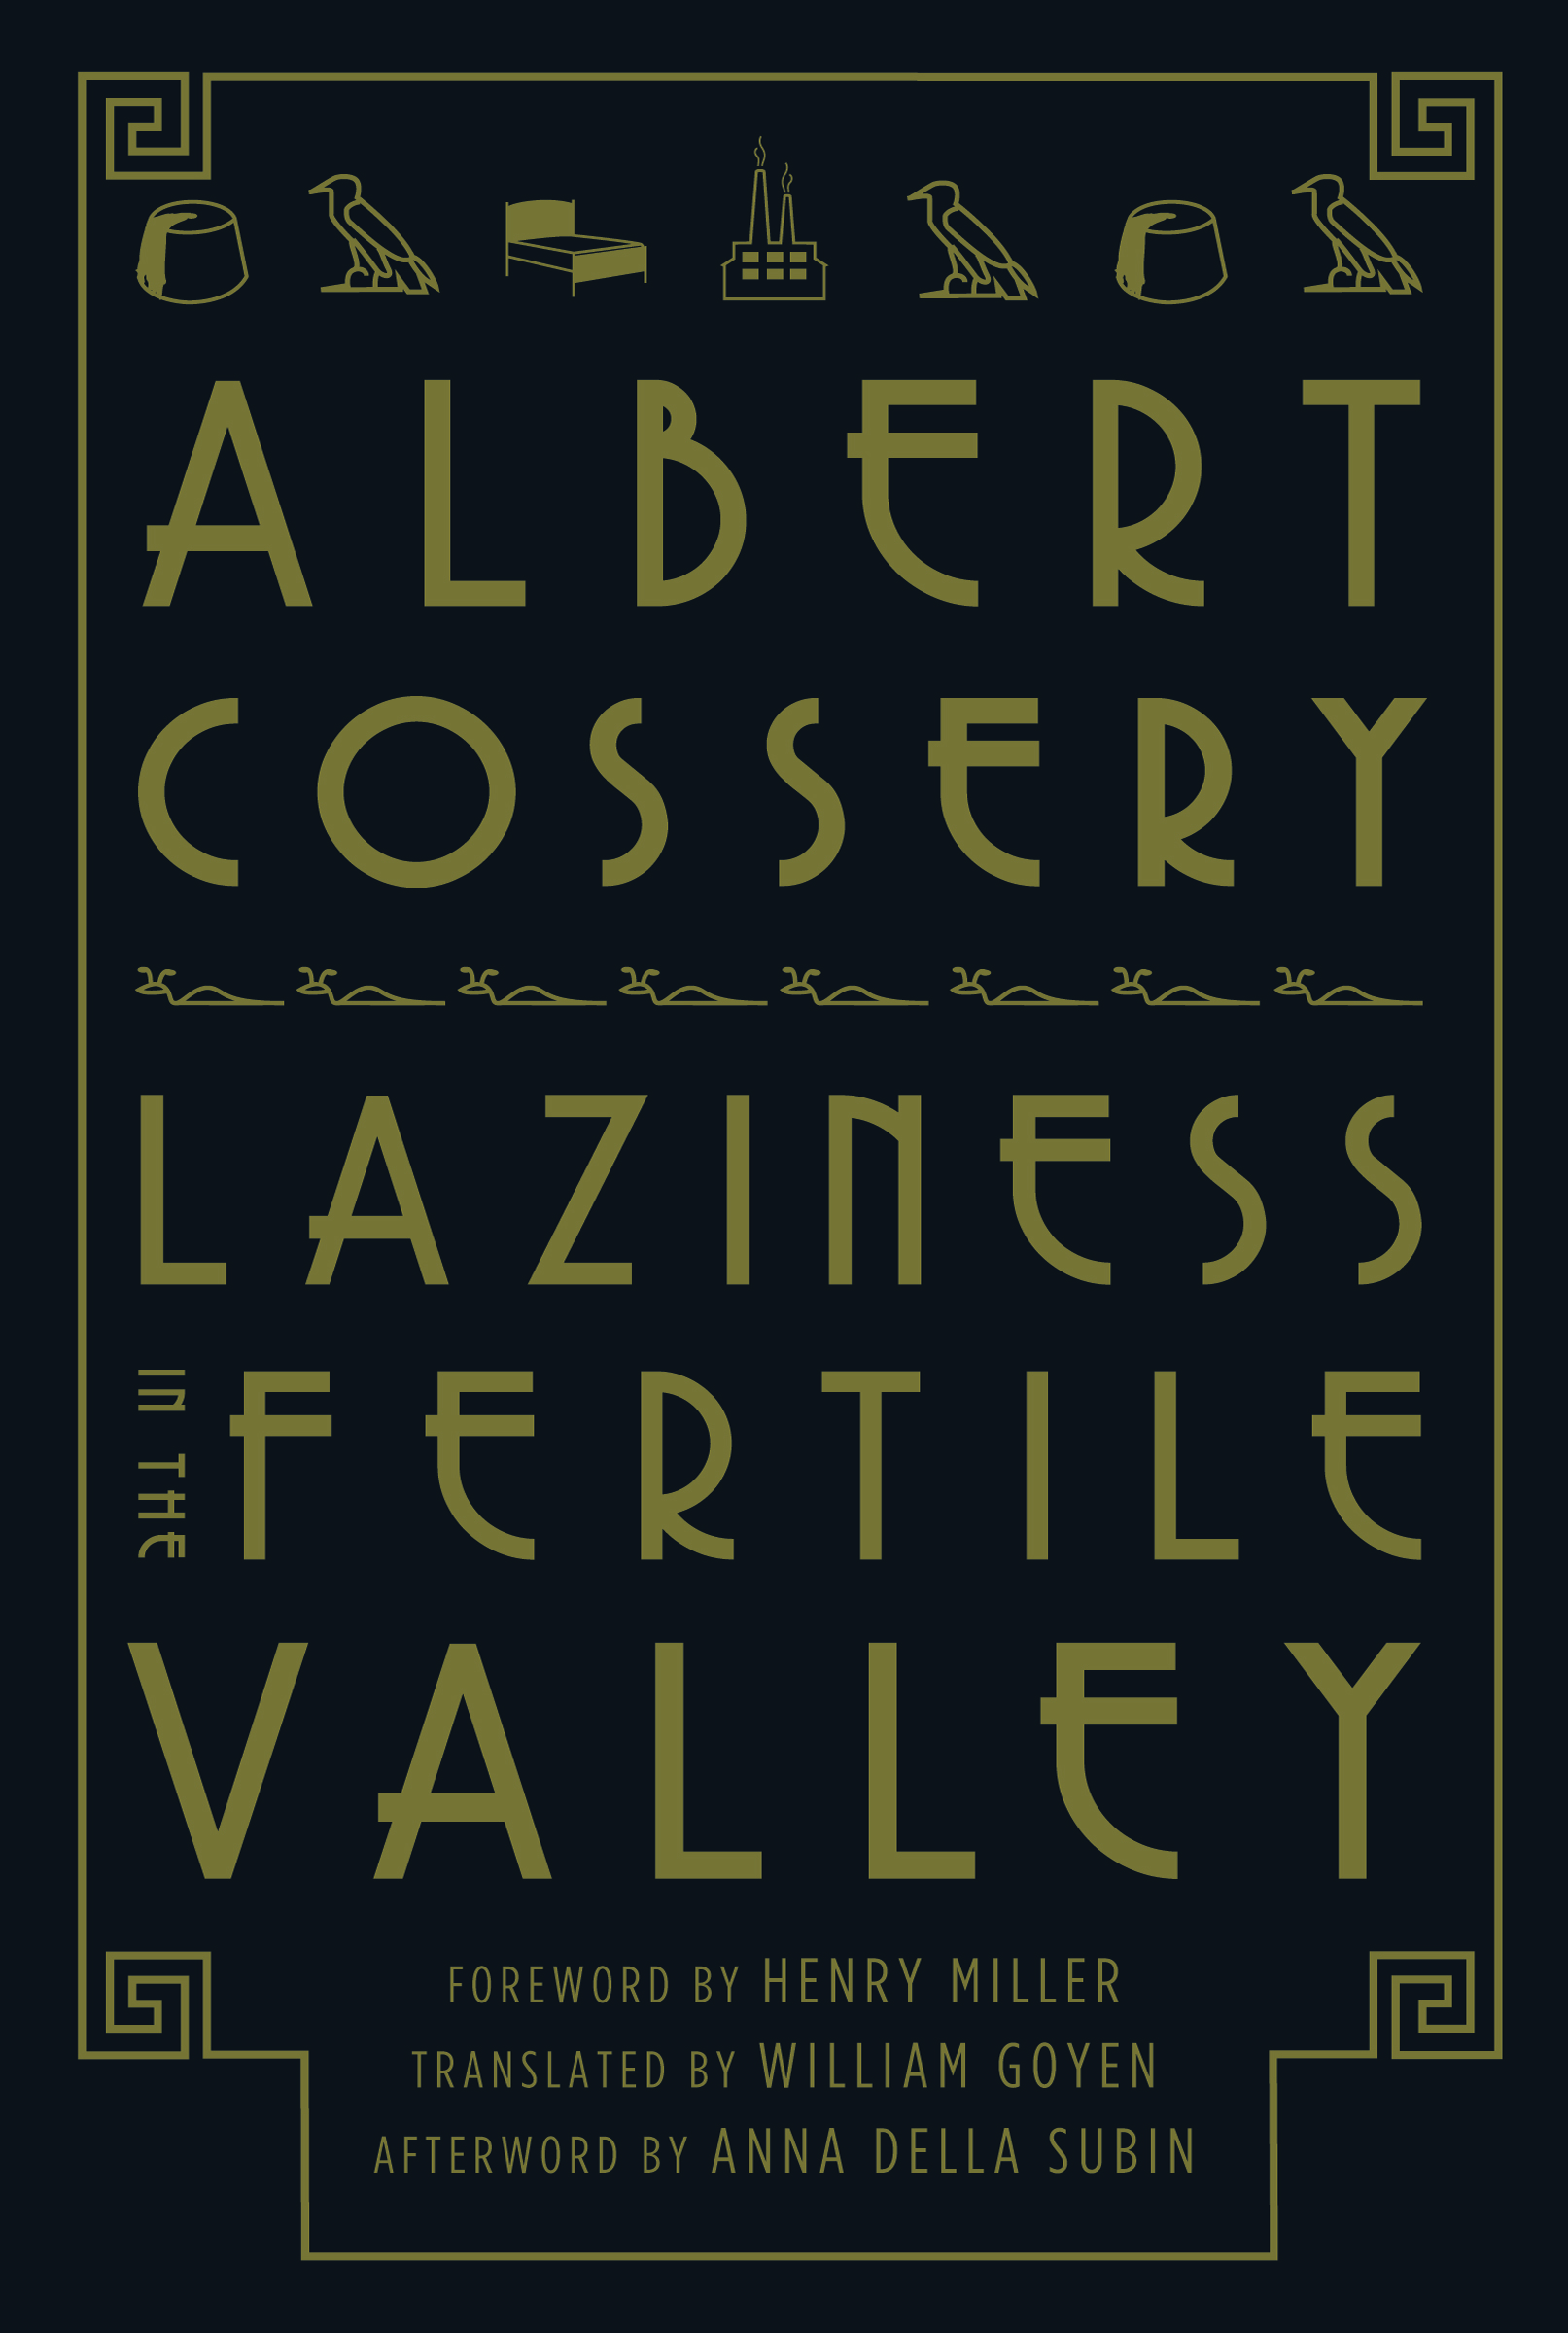 Laziness in the Fertile Valley